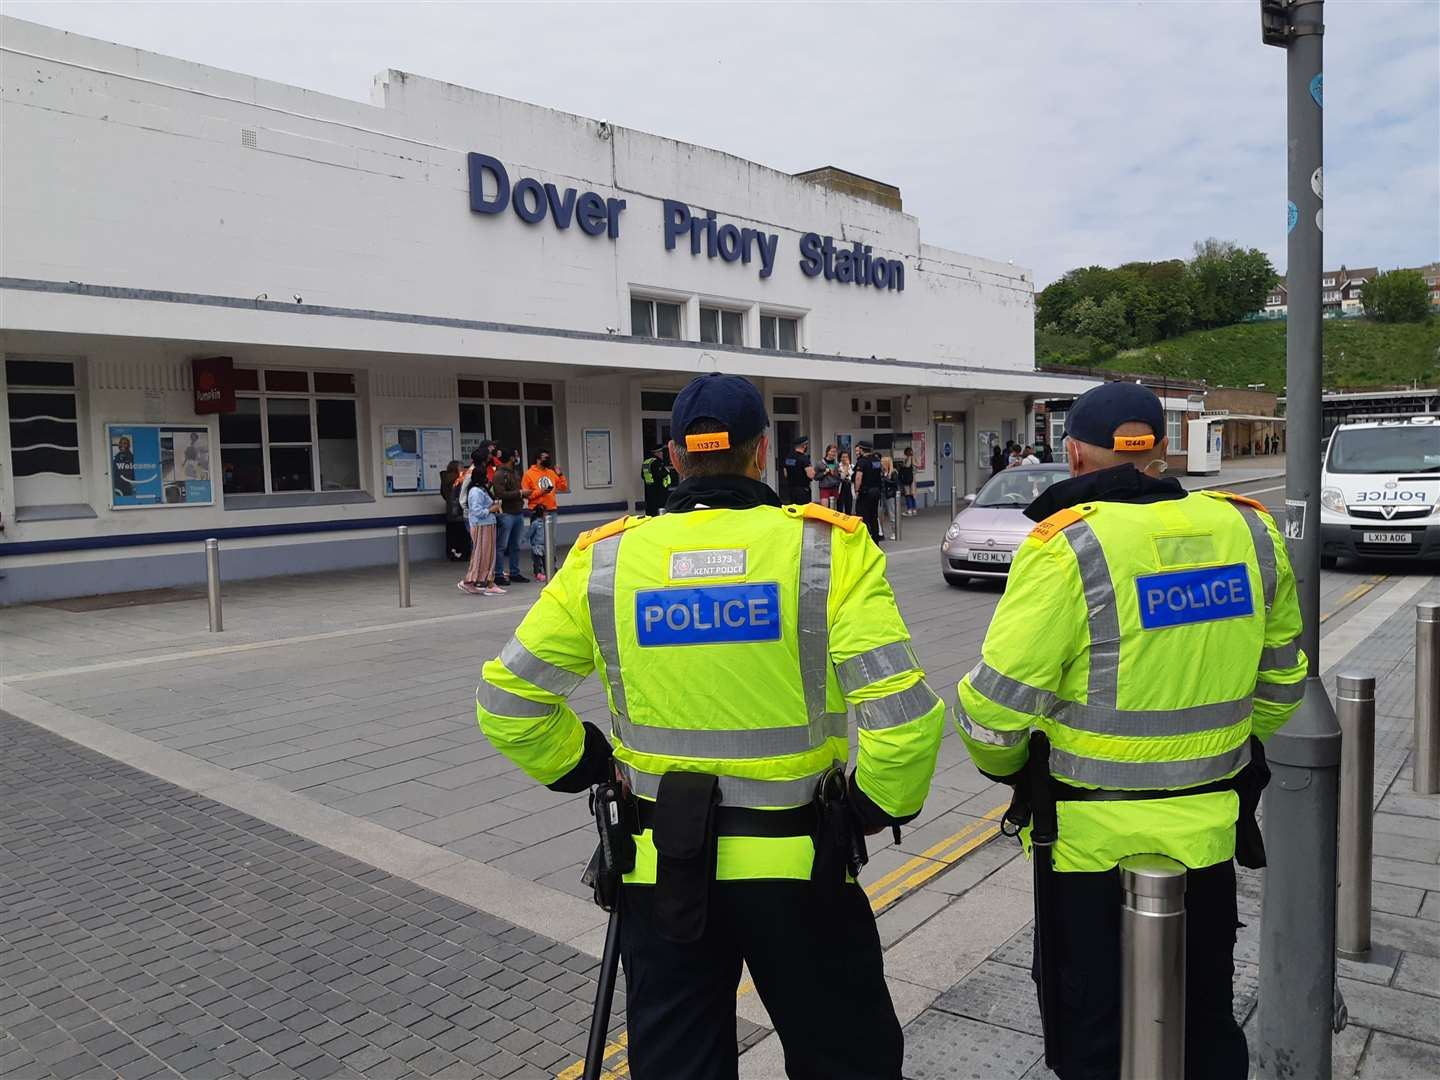 Officers were preparing at the train station ahead of the march